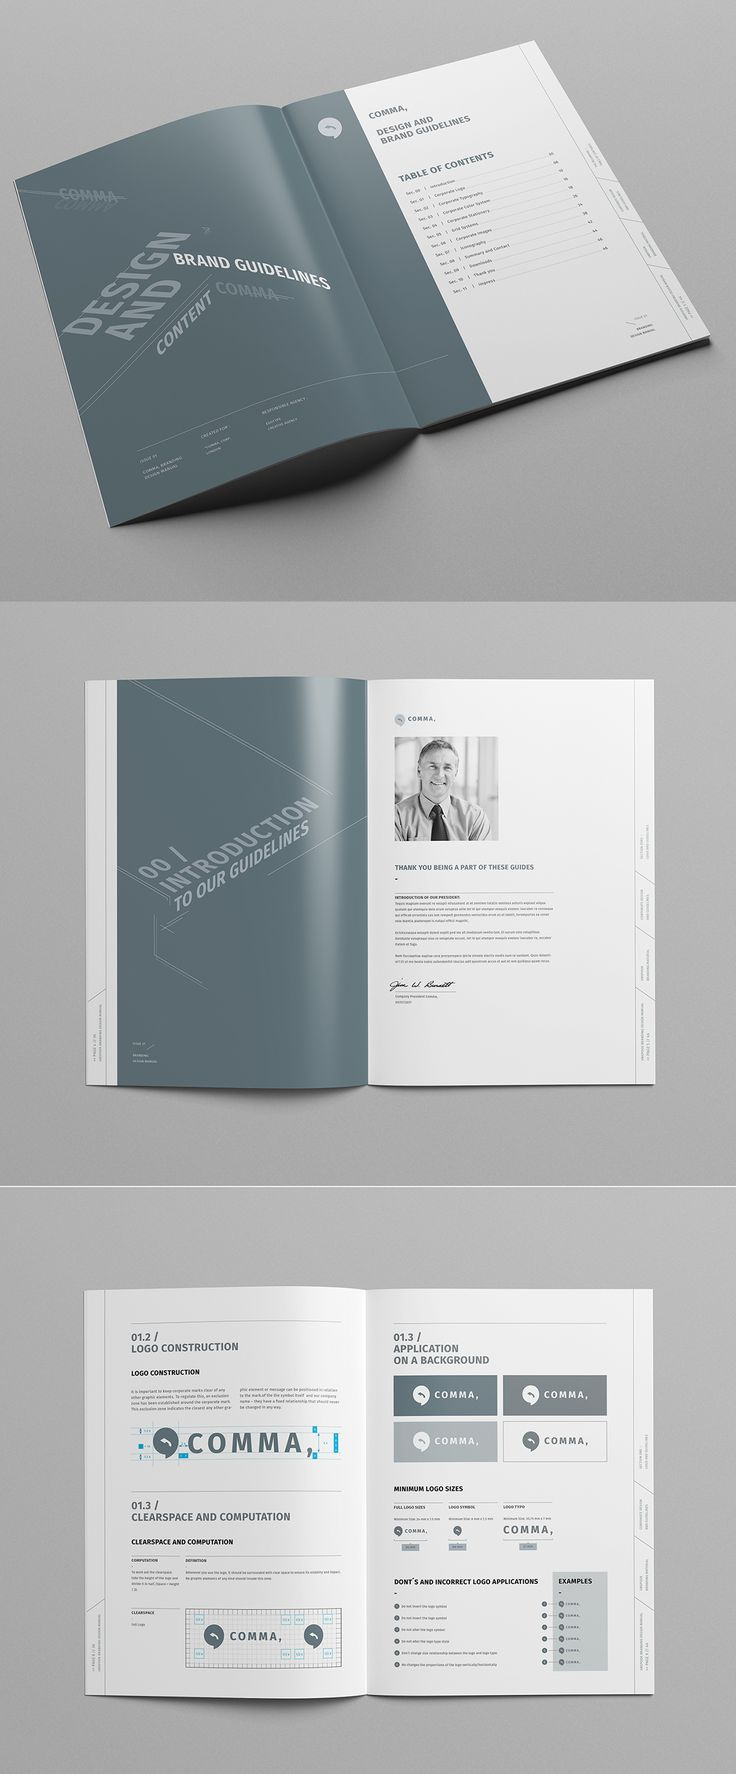 Brand Manual And Identity Template U2013 Corporate Design Brochure U2013 With 48  Pages And Real Text  Manual Design Templates